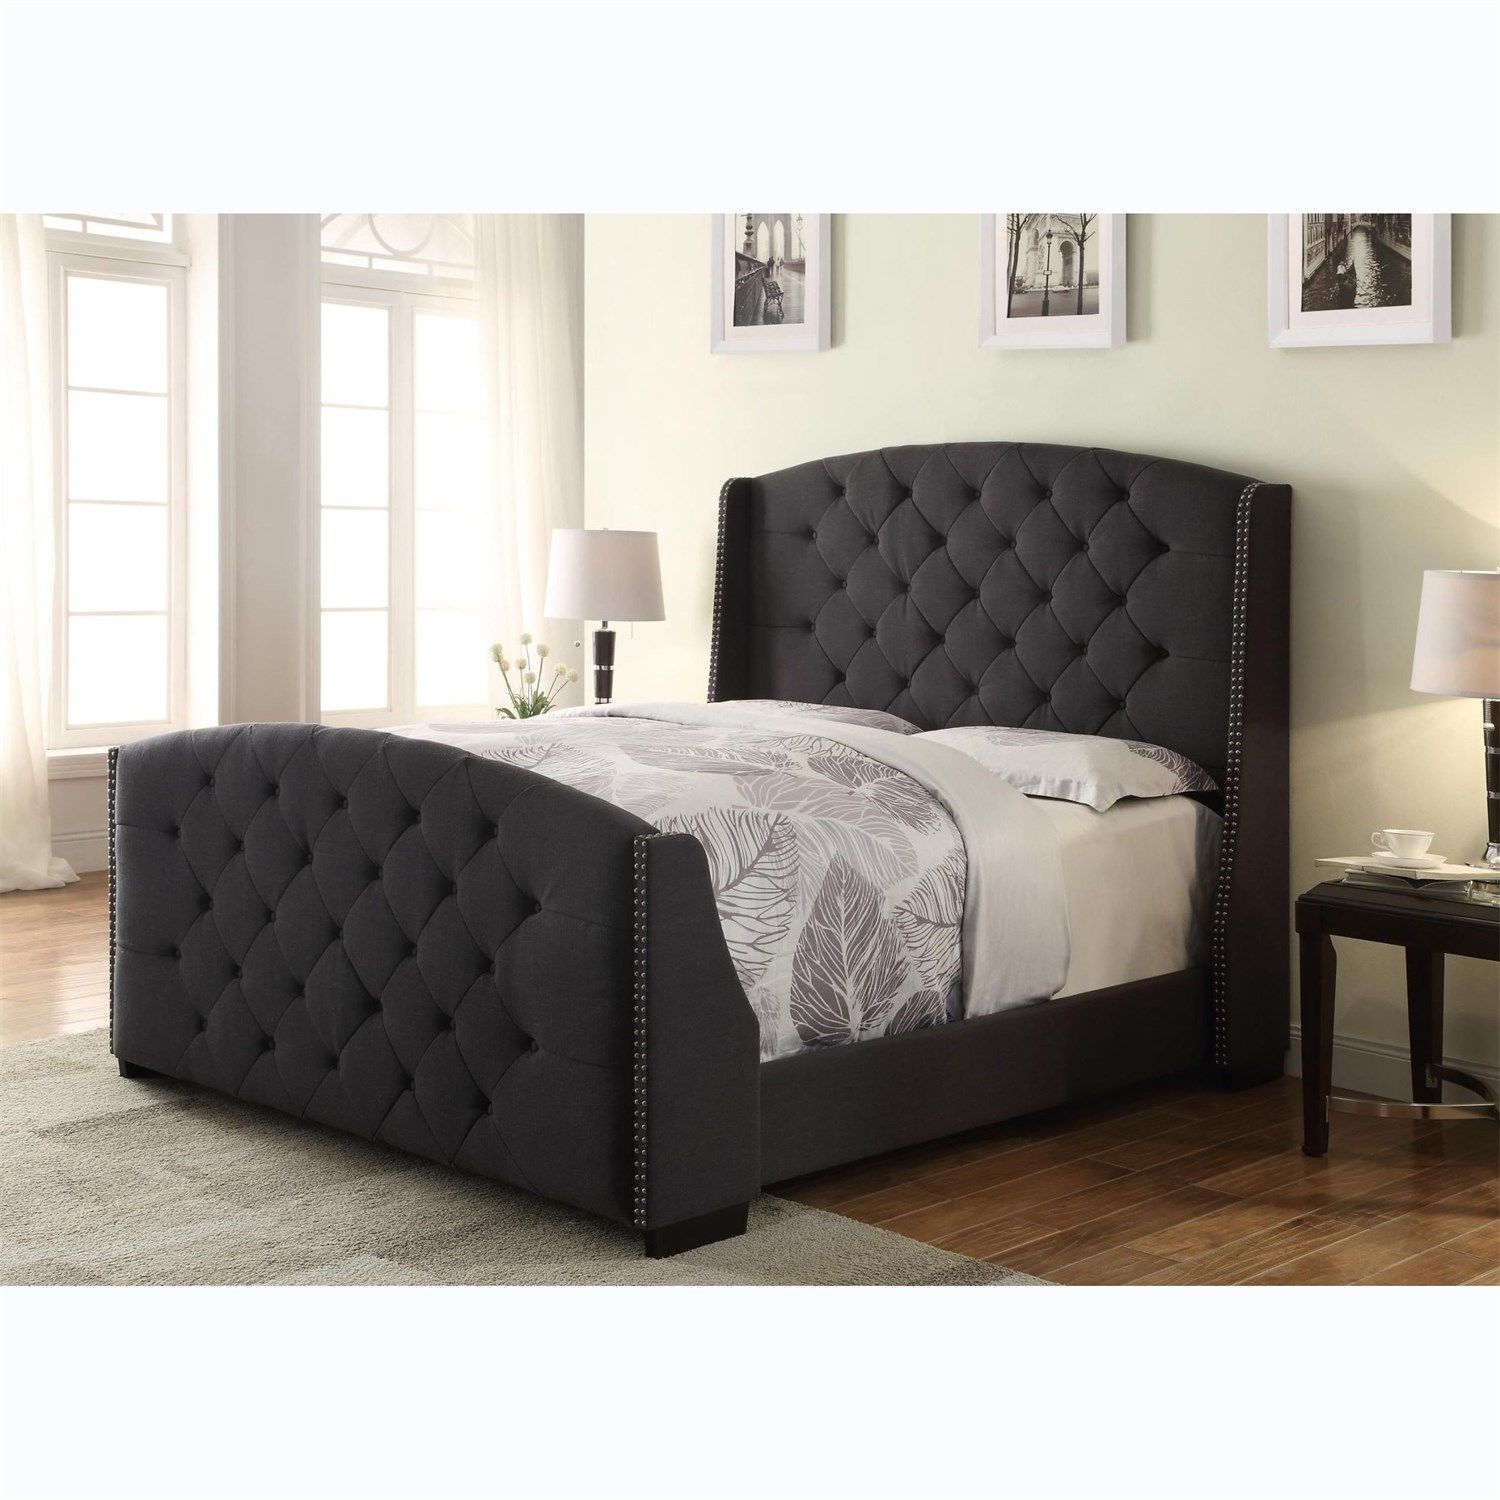 Pin on HEADBOARDS & BEDS